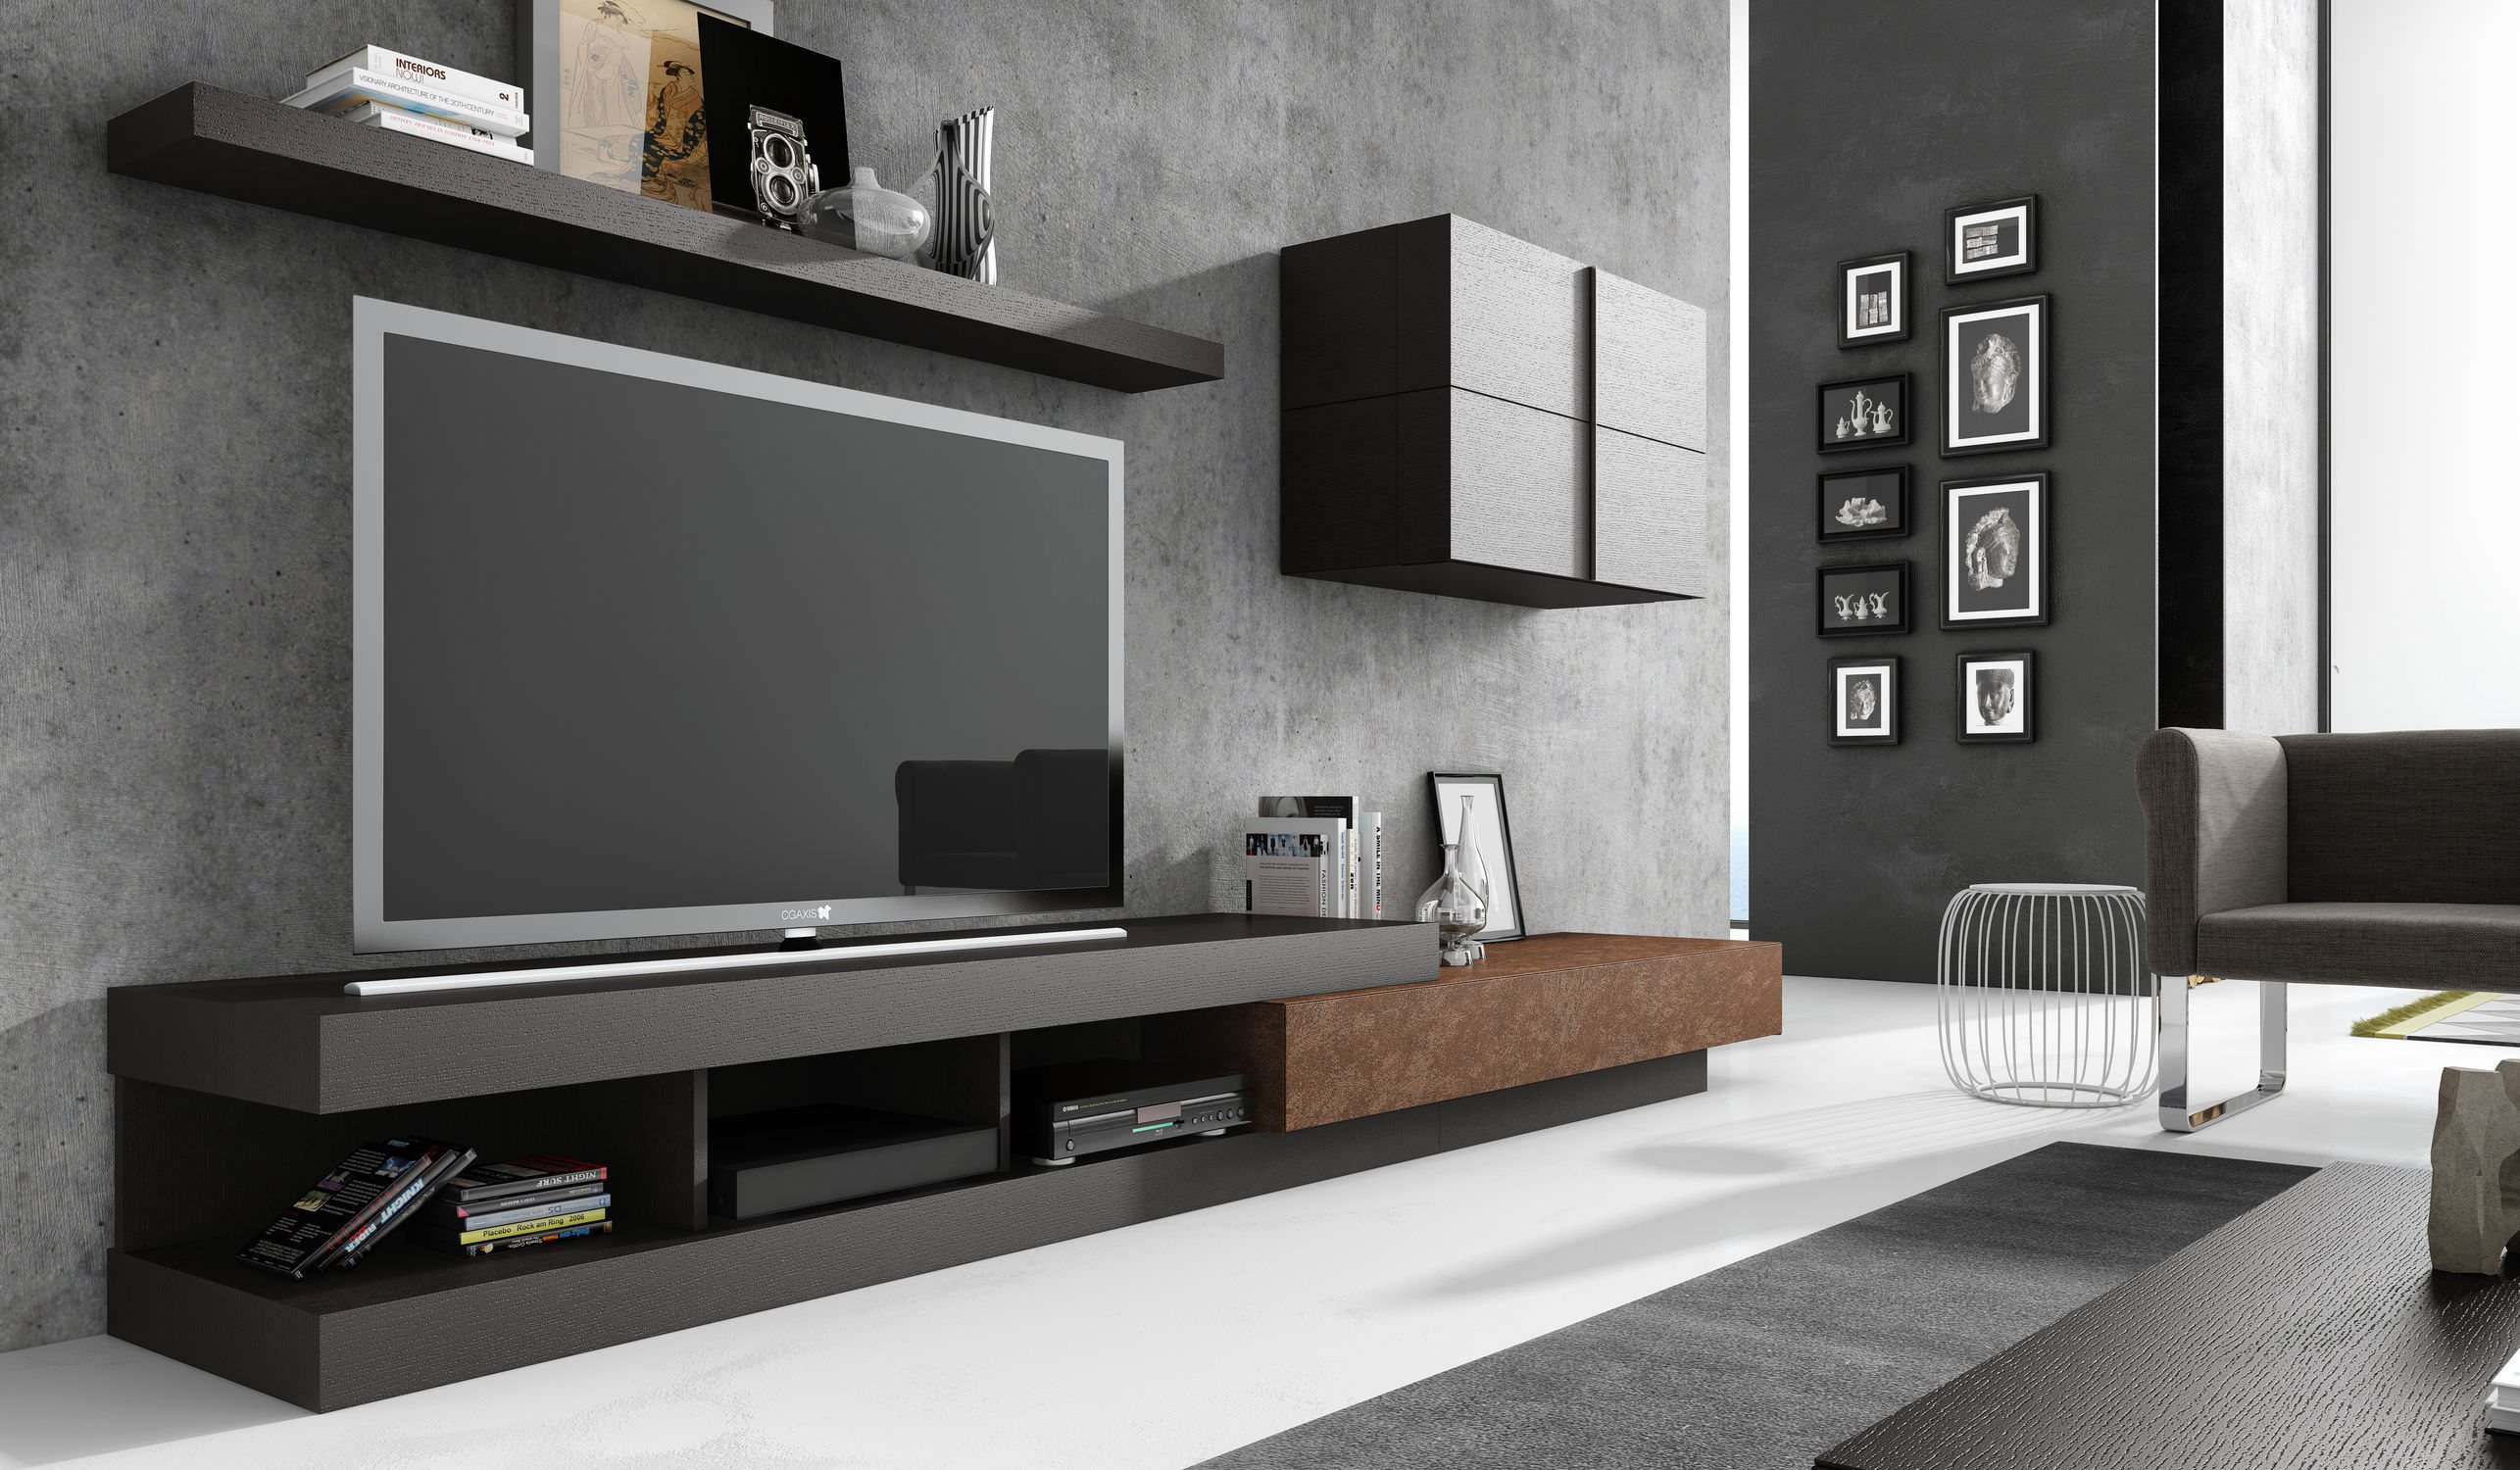 meuble de tv contemporain 1 id es de d coration. Black Bedroom Furniture Sets. Home Design Ideas